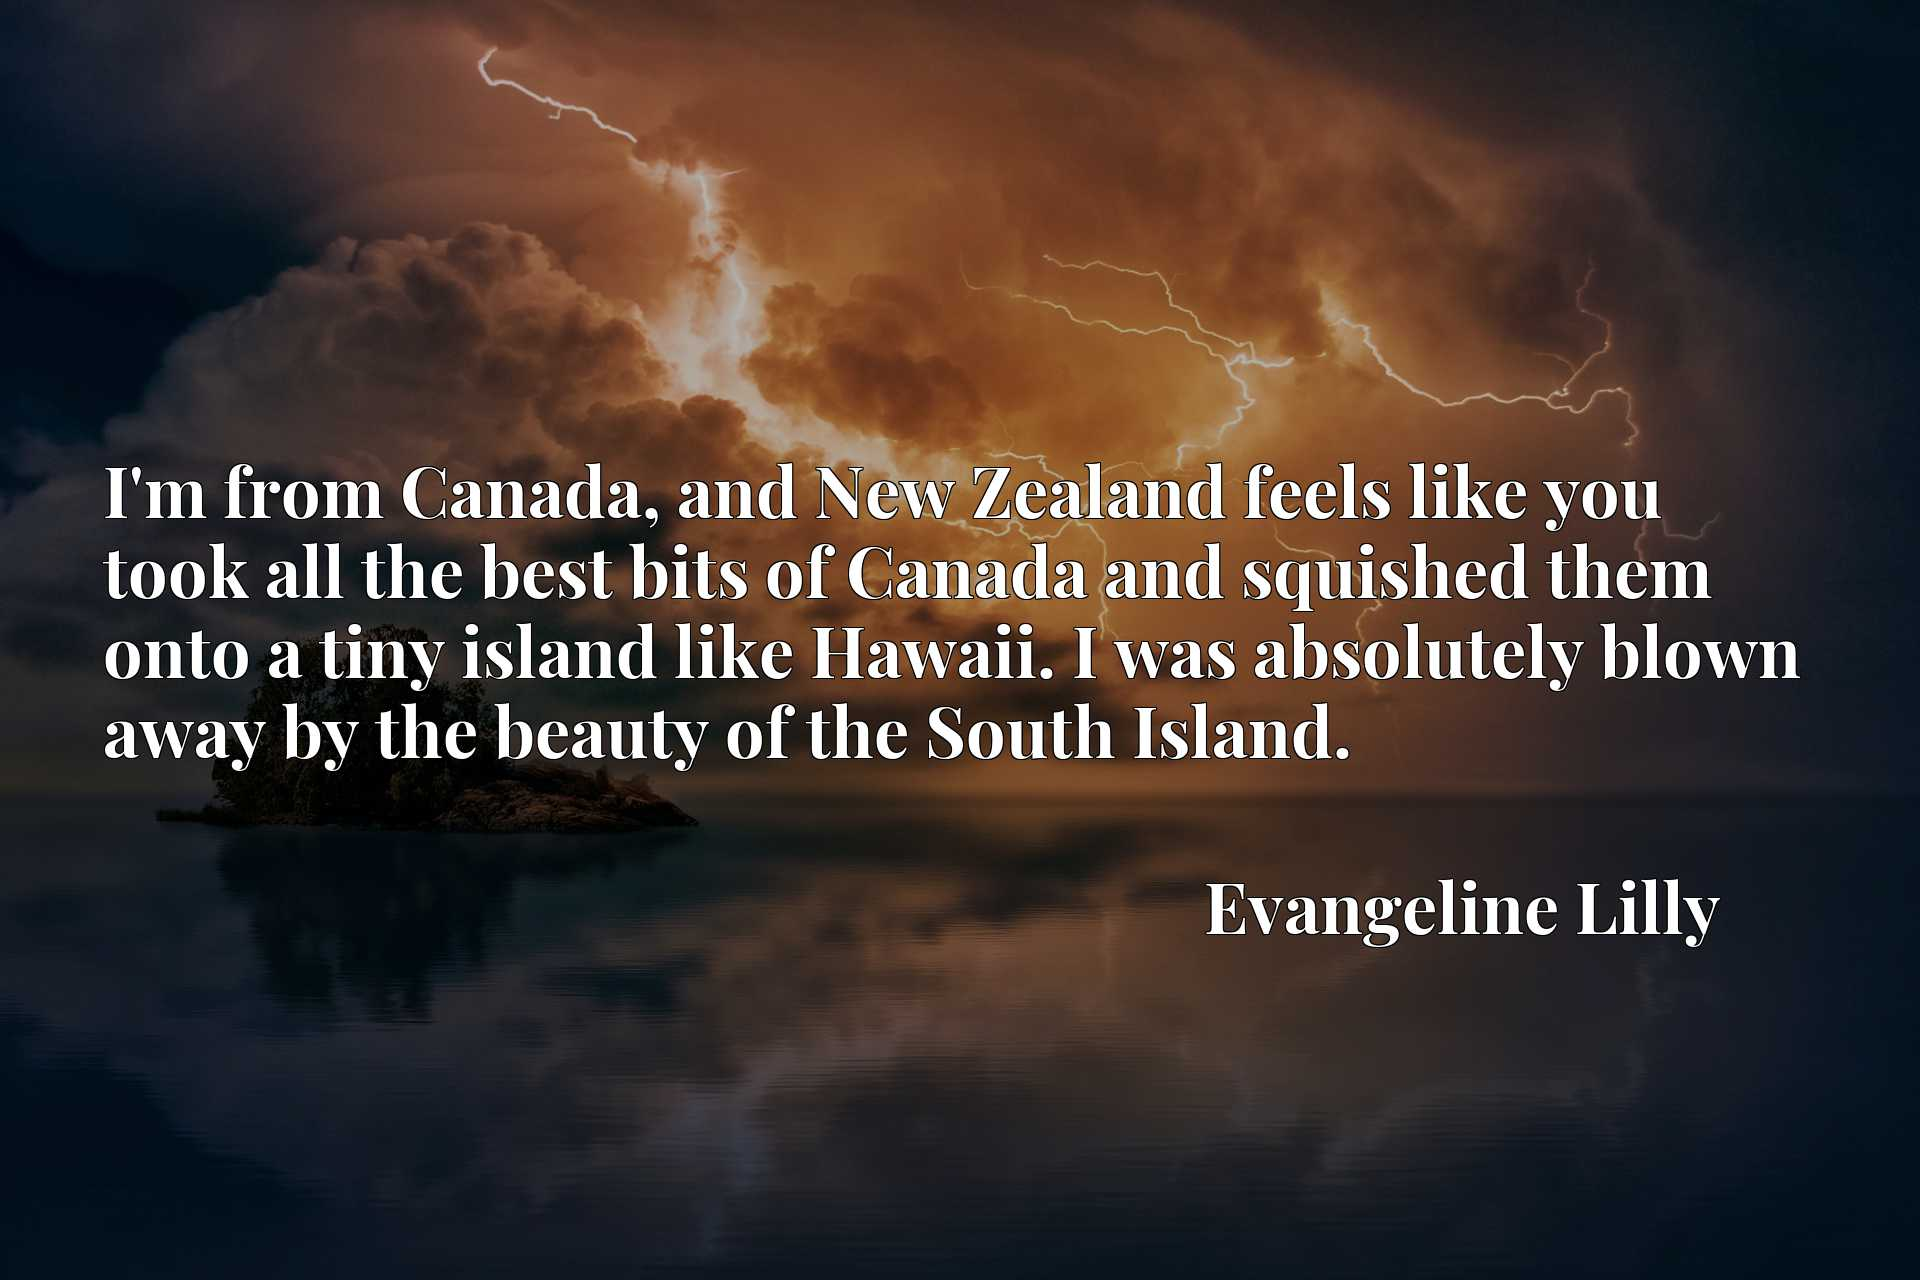 I'm from Canada, and New Zealand feels like you took all the best bits of Canada and squished them onto a tiny island like Hawaii. I was absolutely blown away by the beauty of the South Island.